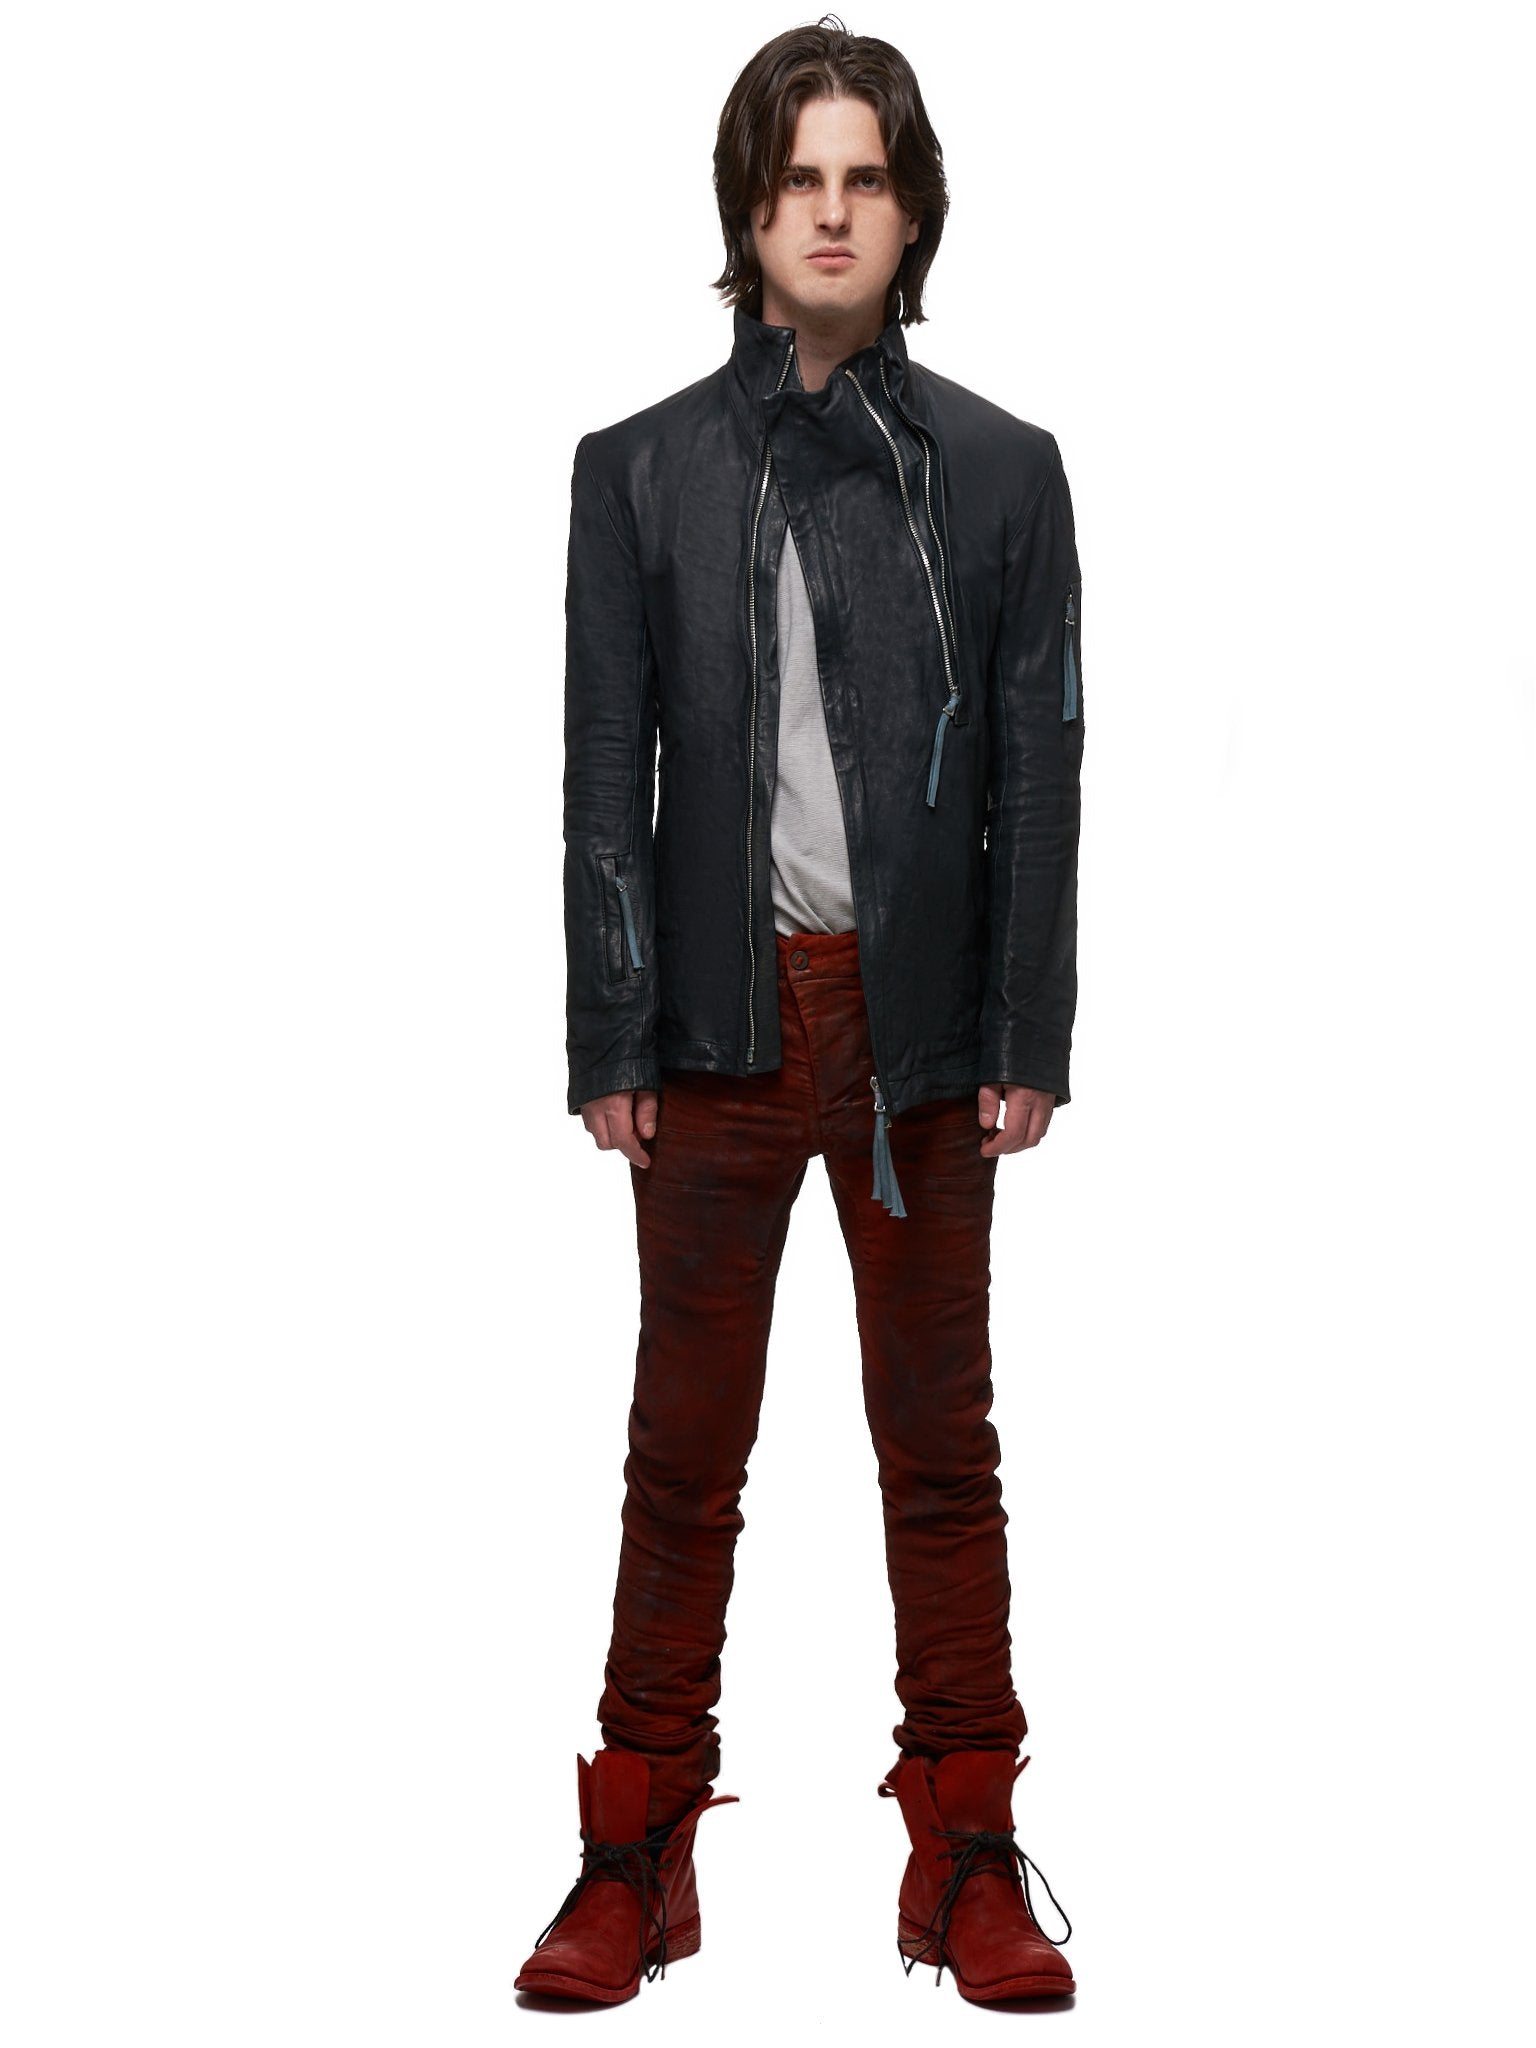 Boris Bidjan Saberi Leather J5 Jacket - Hlorenzo Style